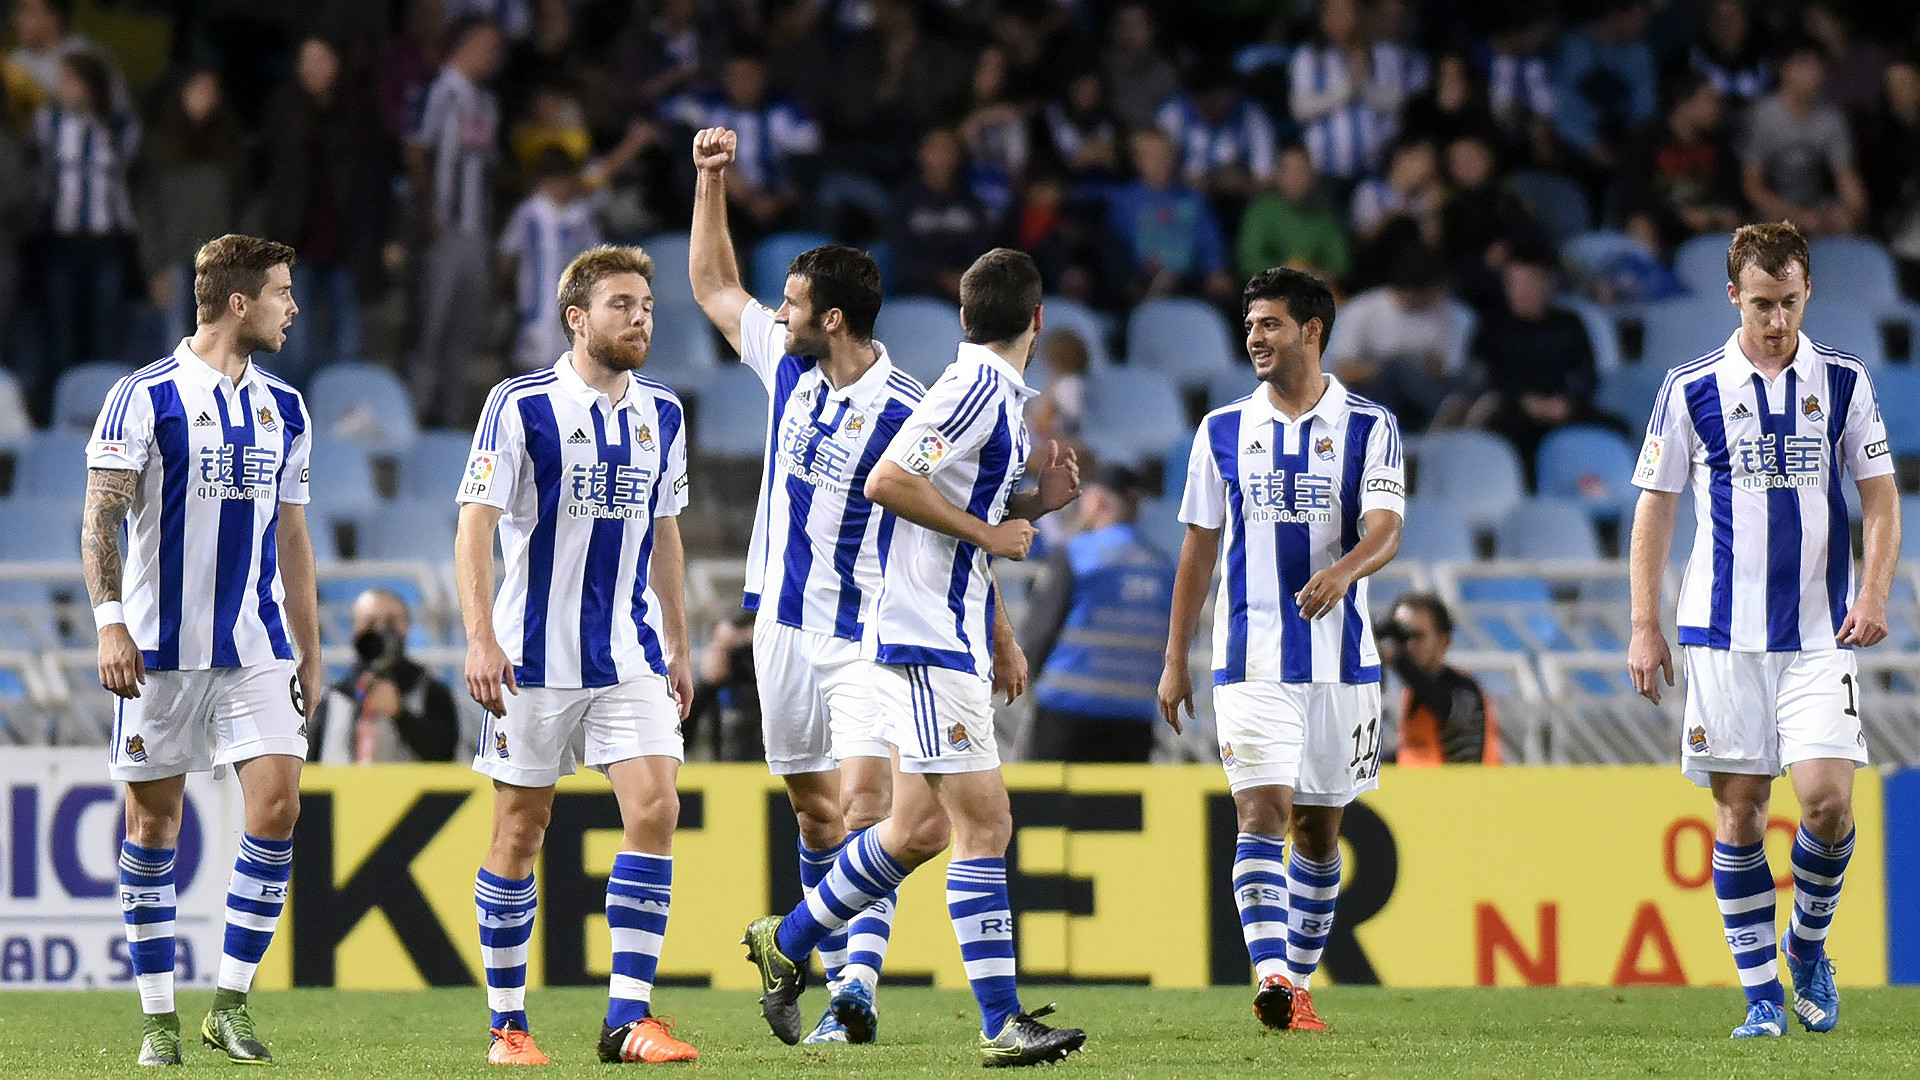 Video: Real Sociedad vs Deportivo La Coruna